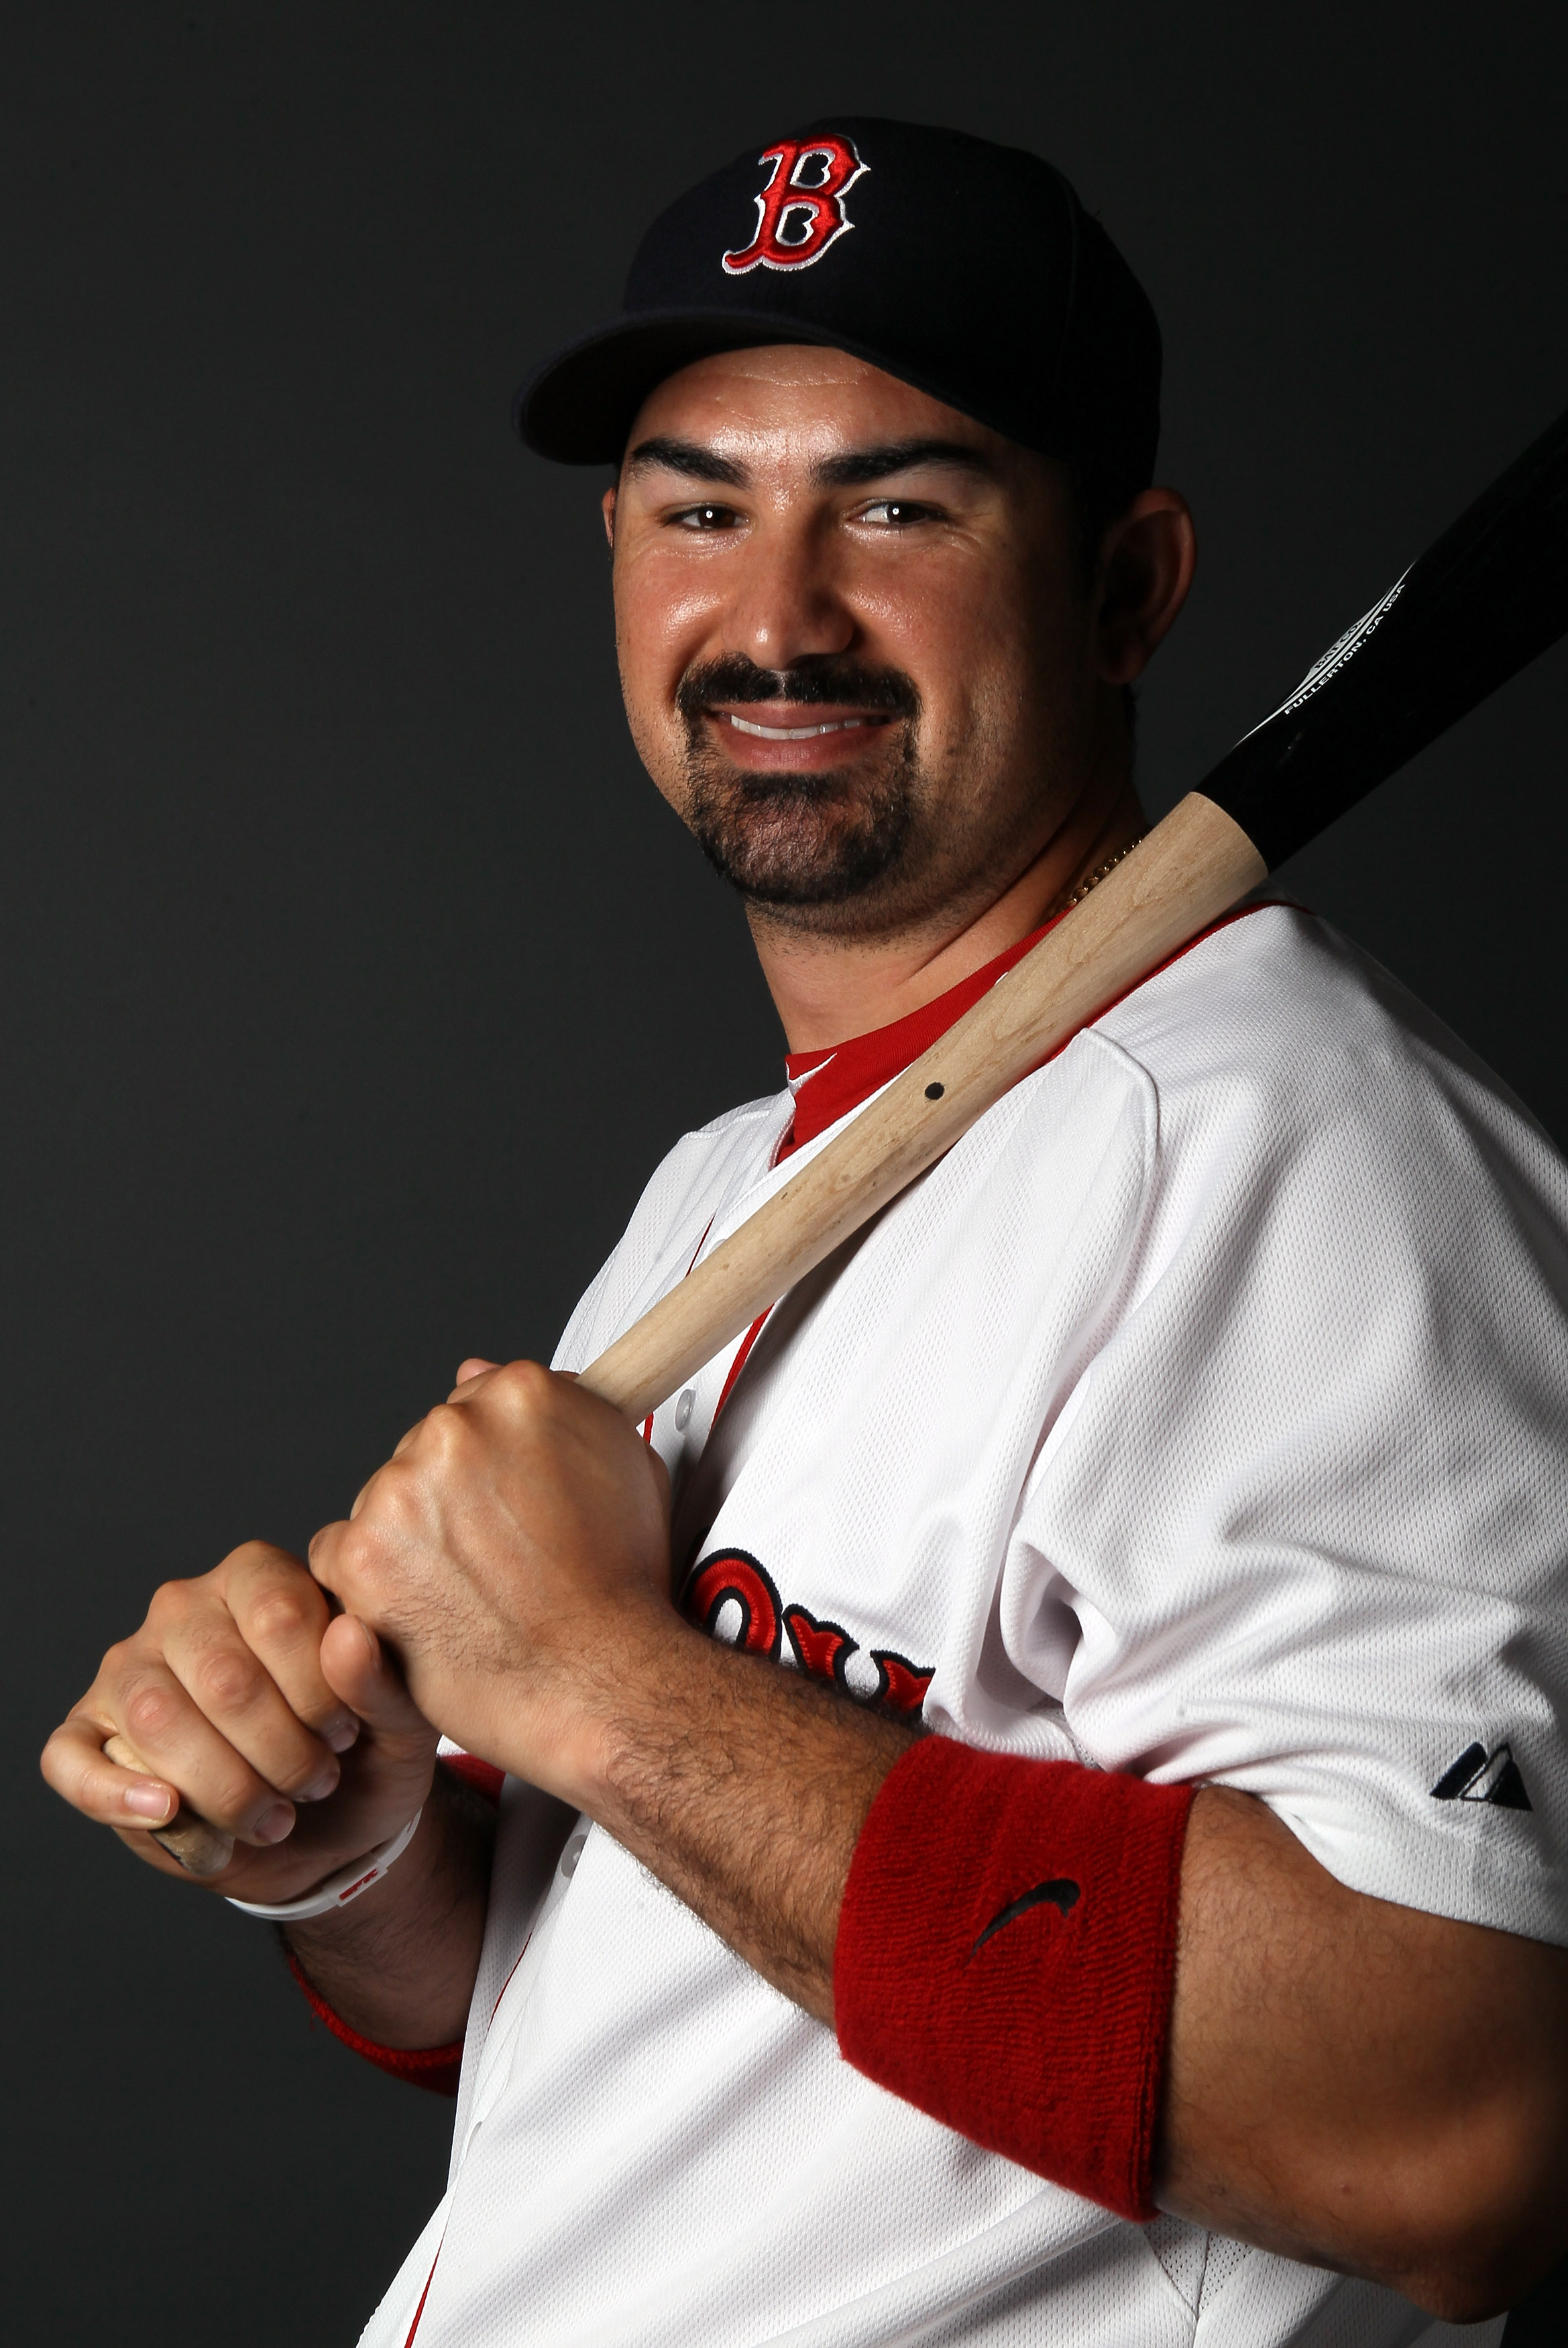 FT. MYERS, FL - FEBRUARY 20:  Adrian Gonzalez #28 of the Boston Red Sox poses for a portrait during the Boston Red Sox Photo Day on February 20, 2011 at the Boston Red Sox Player Development Complex in Ft. Myers, Florida  (Photo by Elsa/Getty Images)